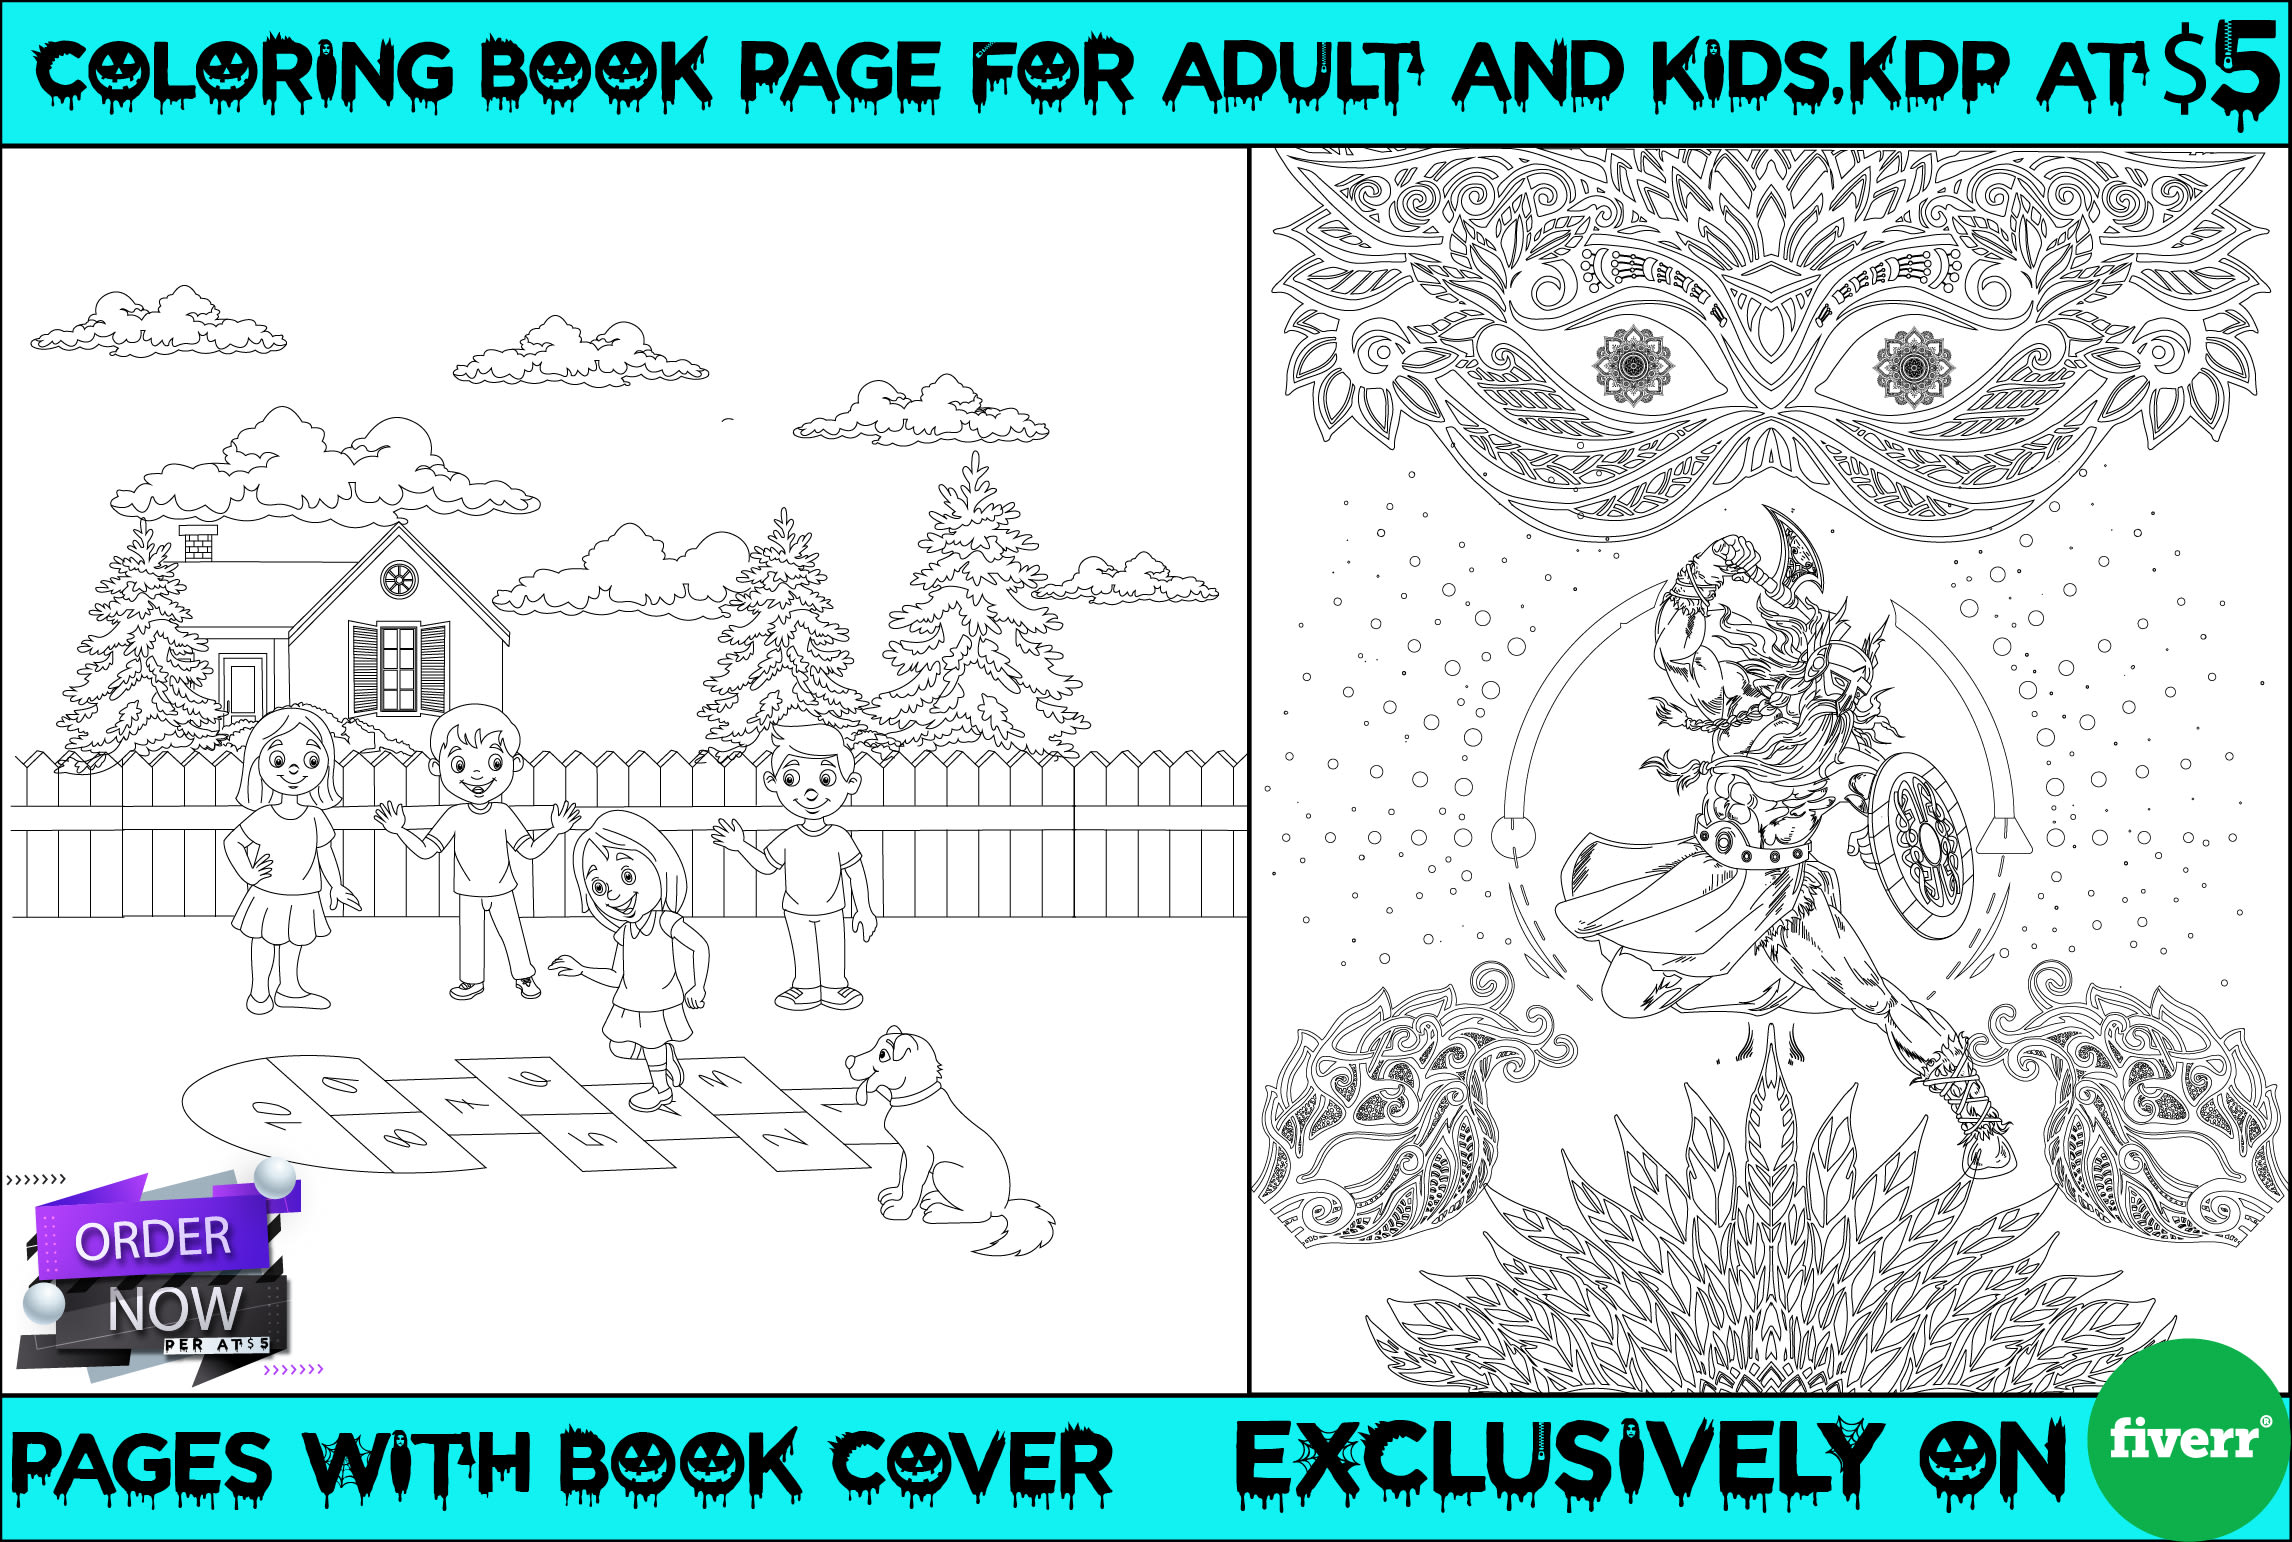 I will do coloring book page for children and adult